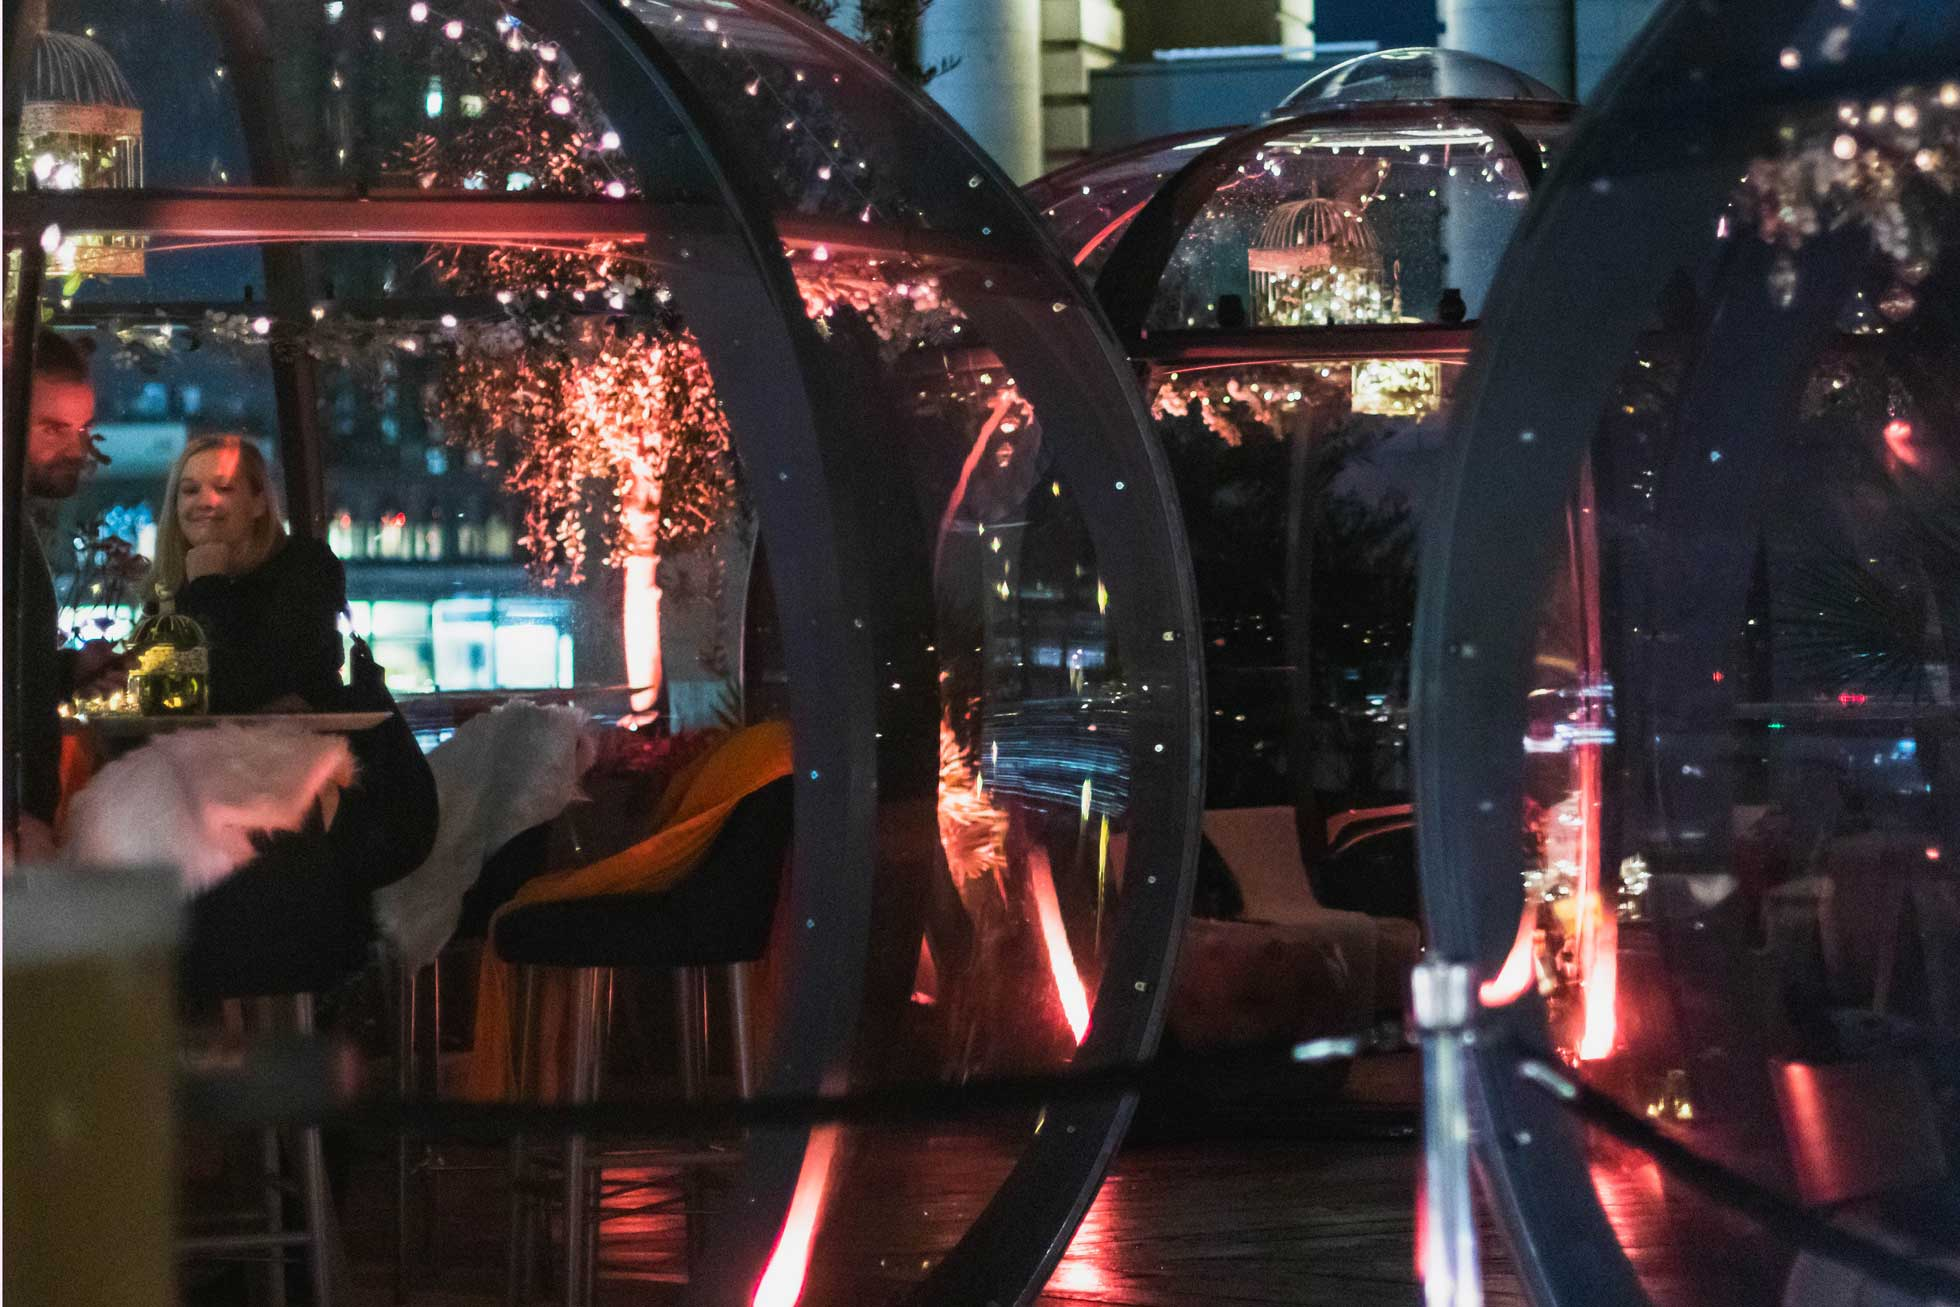 Patrons enjoy their drinks and the ambience from one of several pods decorated with pretty lights